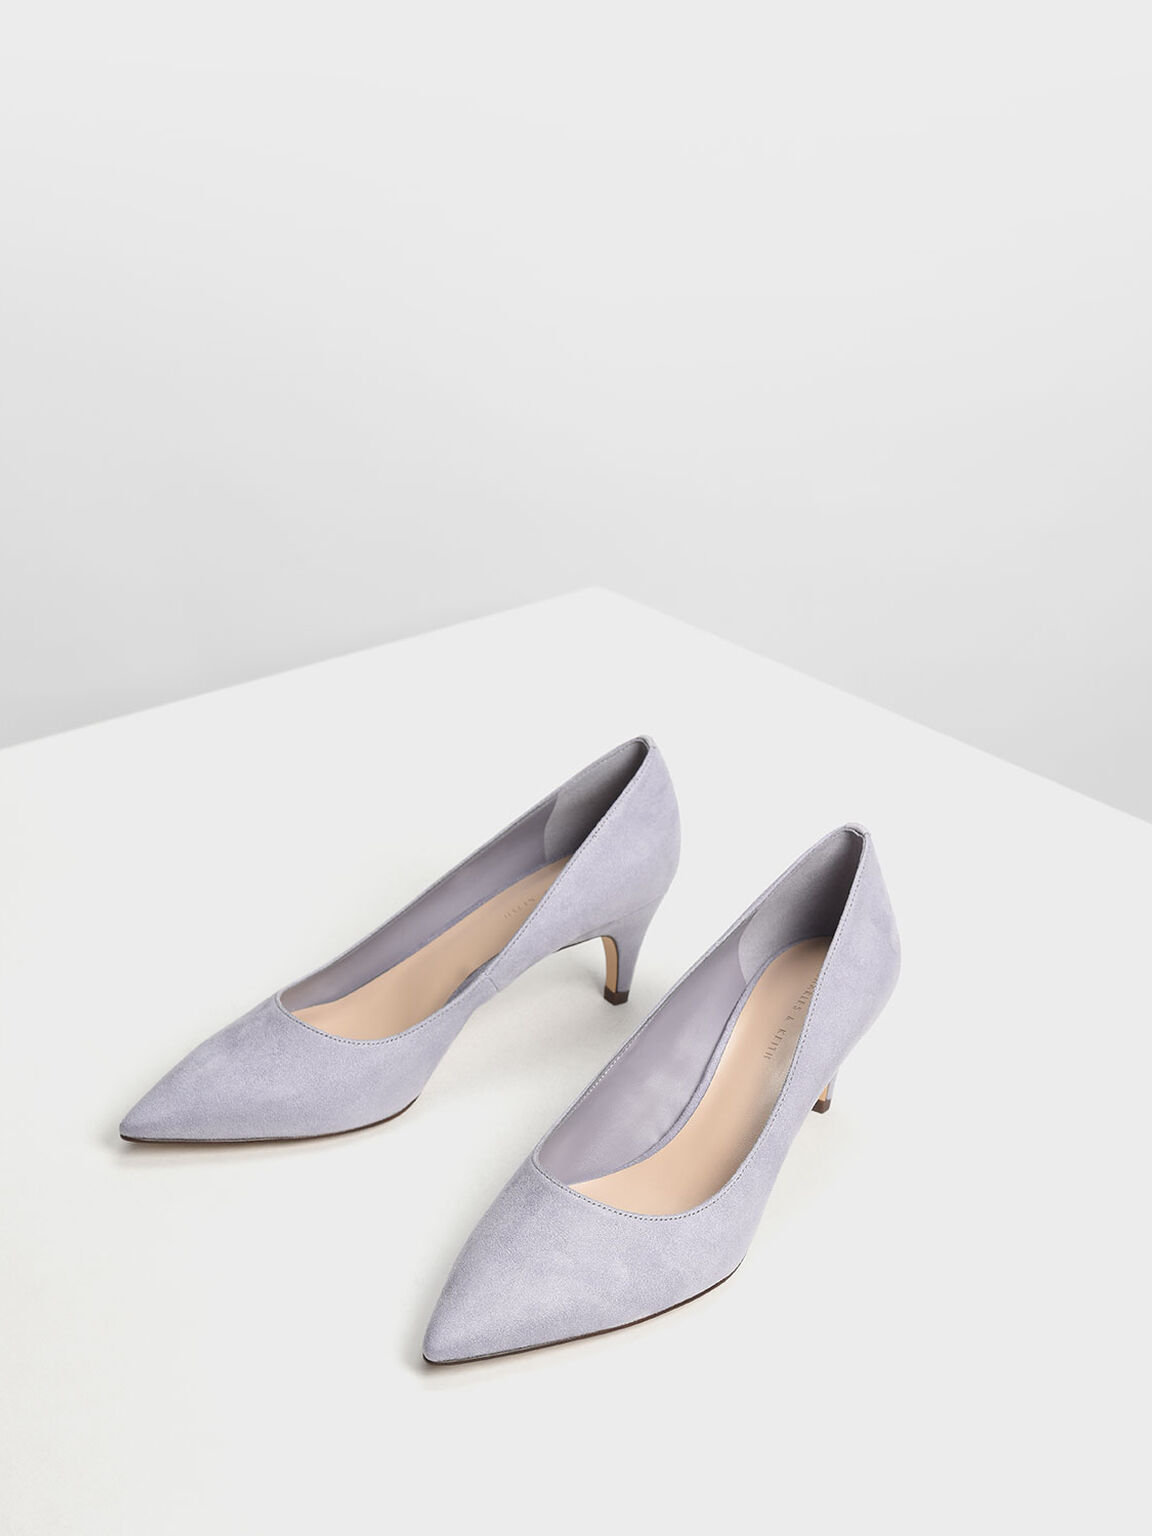 Classic Kitten Heel Pumps, Light Grey, hi-res